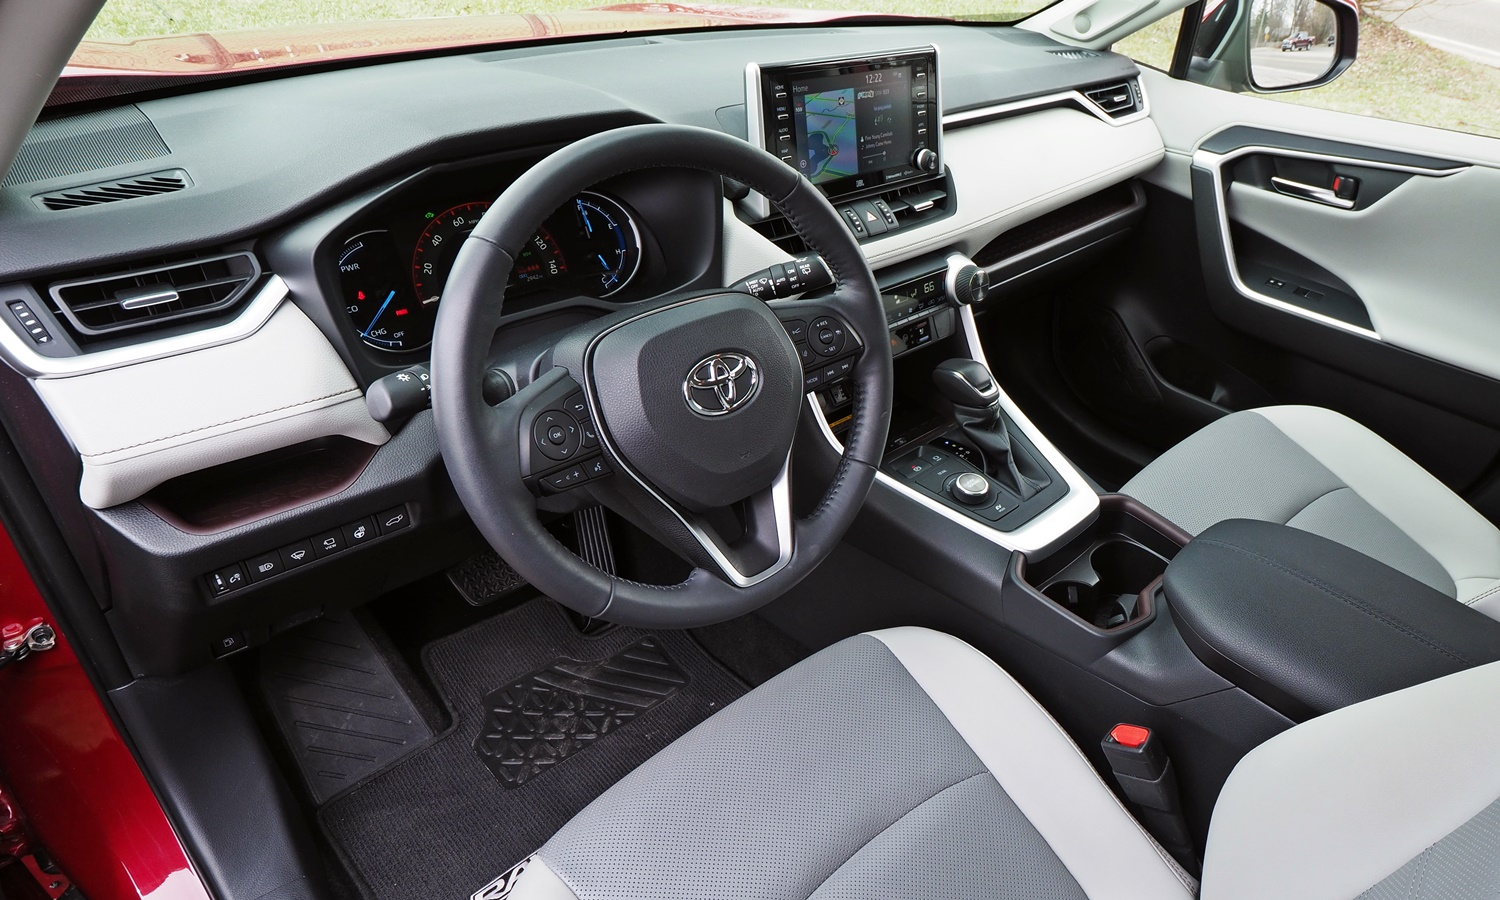 RAV4 Reviews: 2019 Toyota RAV4 interior